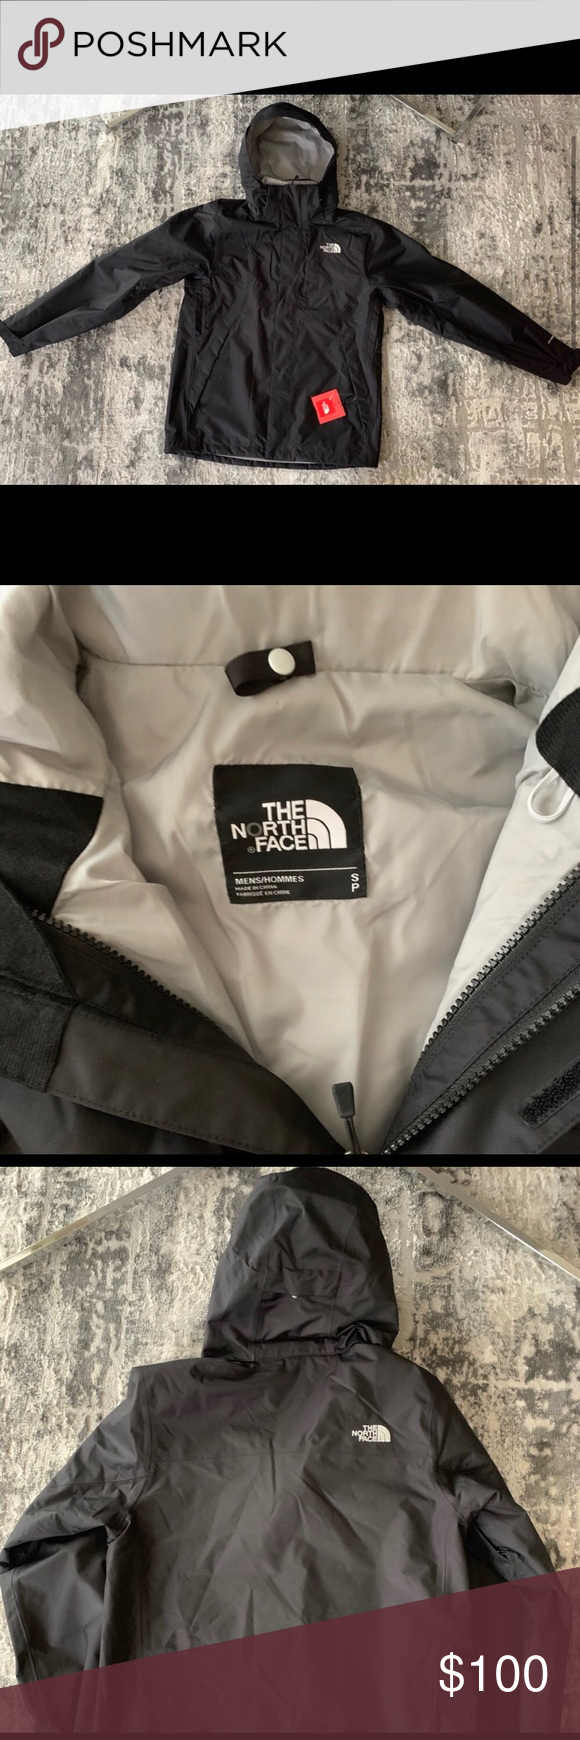 Small Men S North Face Jacket North Face Jacket North Face Jacket Mens The North Face [ 1740 x 580 Pixel ]